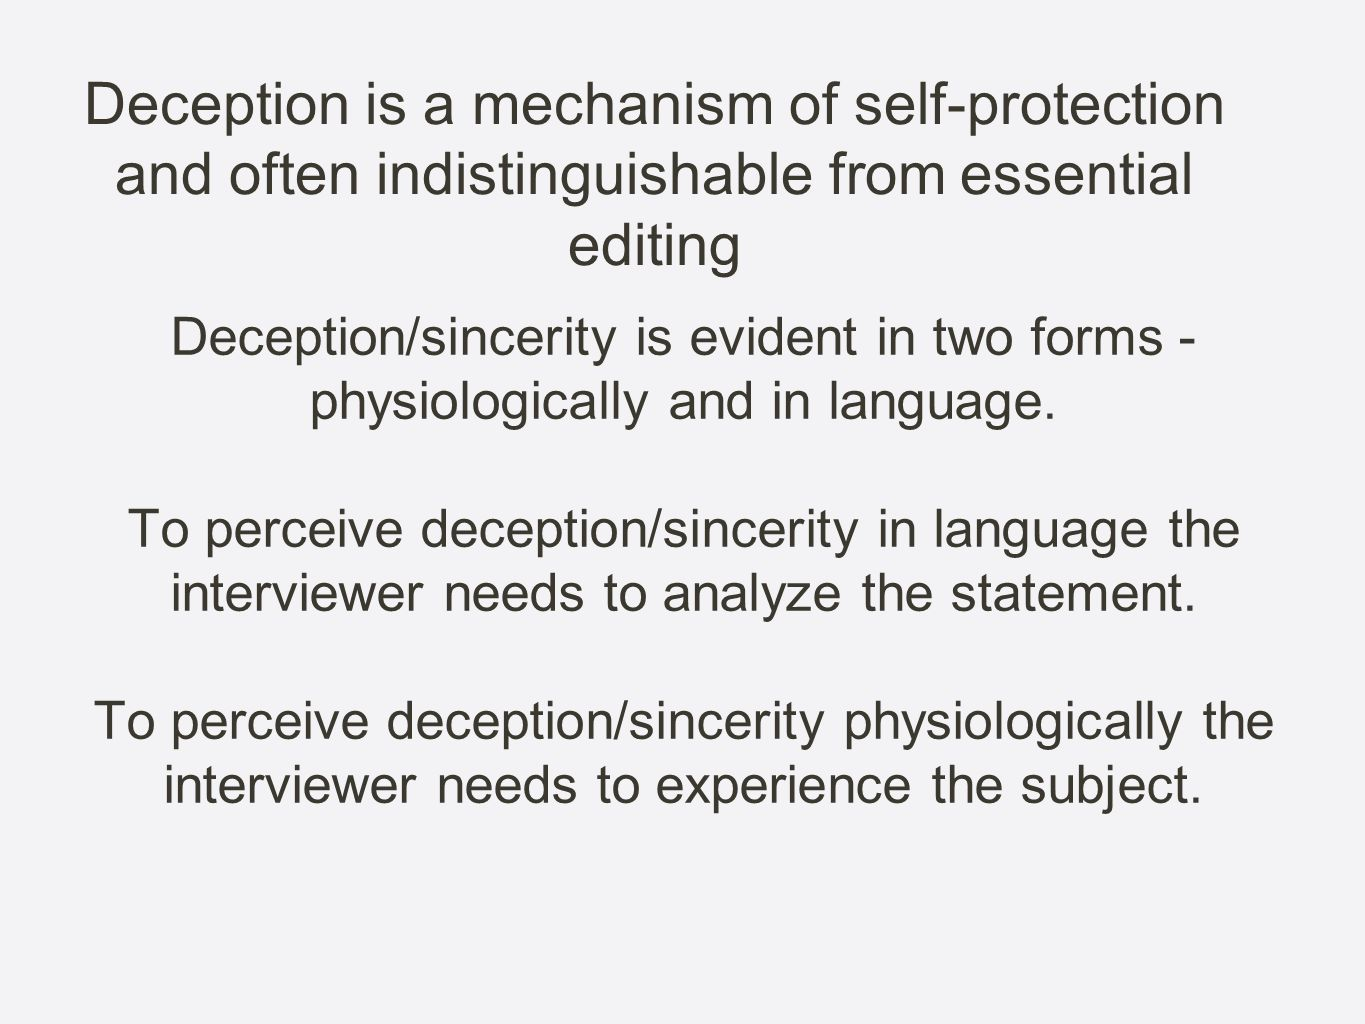 Deception is a mechanism of self-protection and often indistinguishable from essential editing